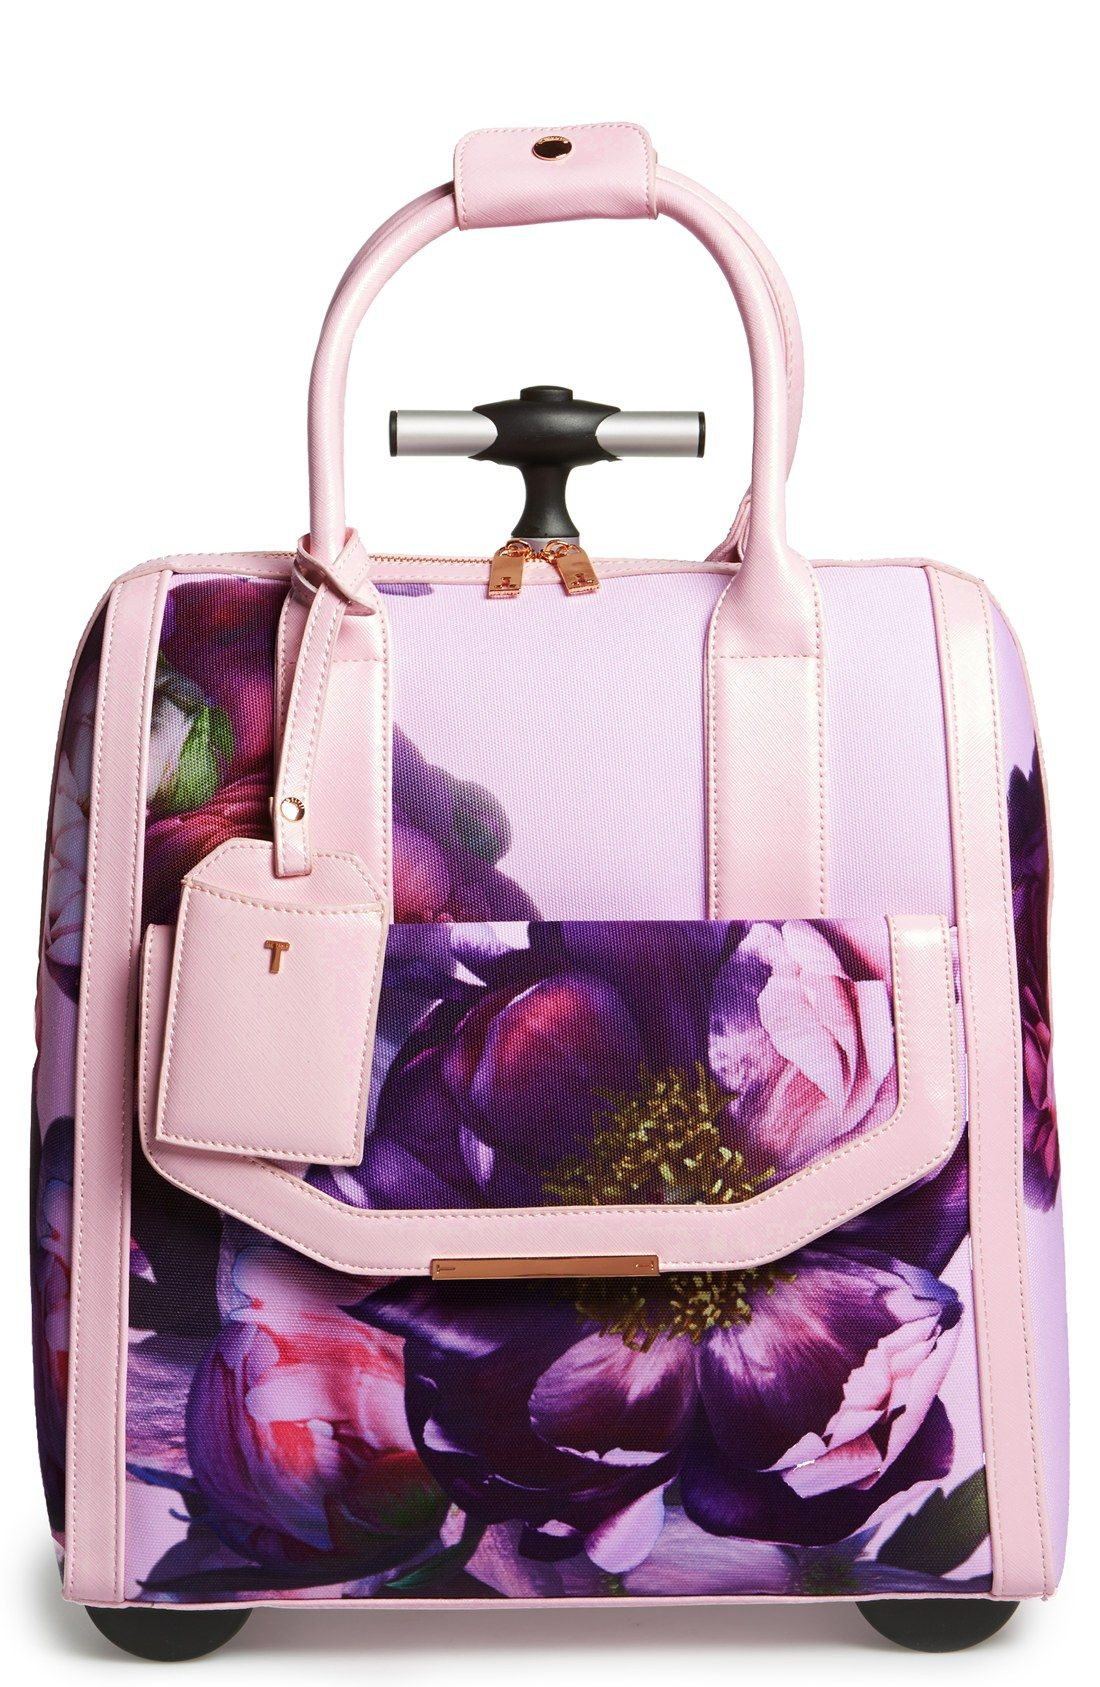 Ted Baker London Sunlit Floral Travel Bag Bags Best Travel Luggage Travel Bags